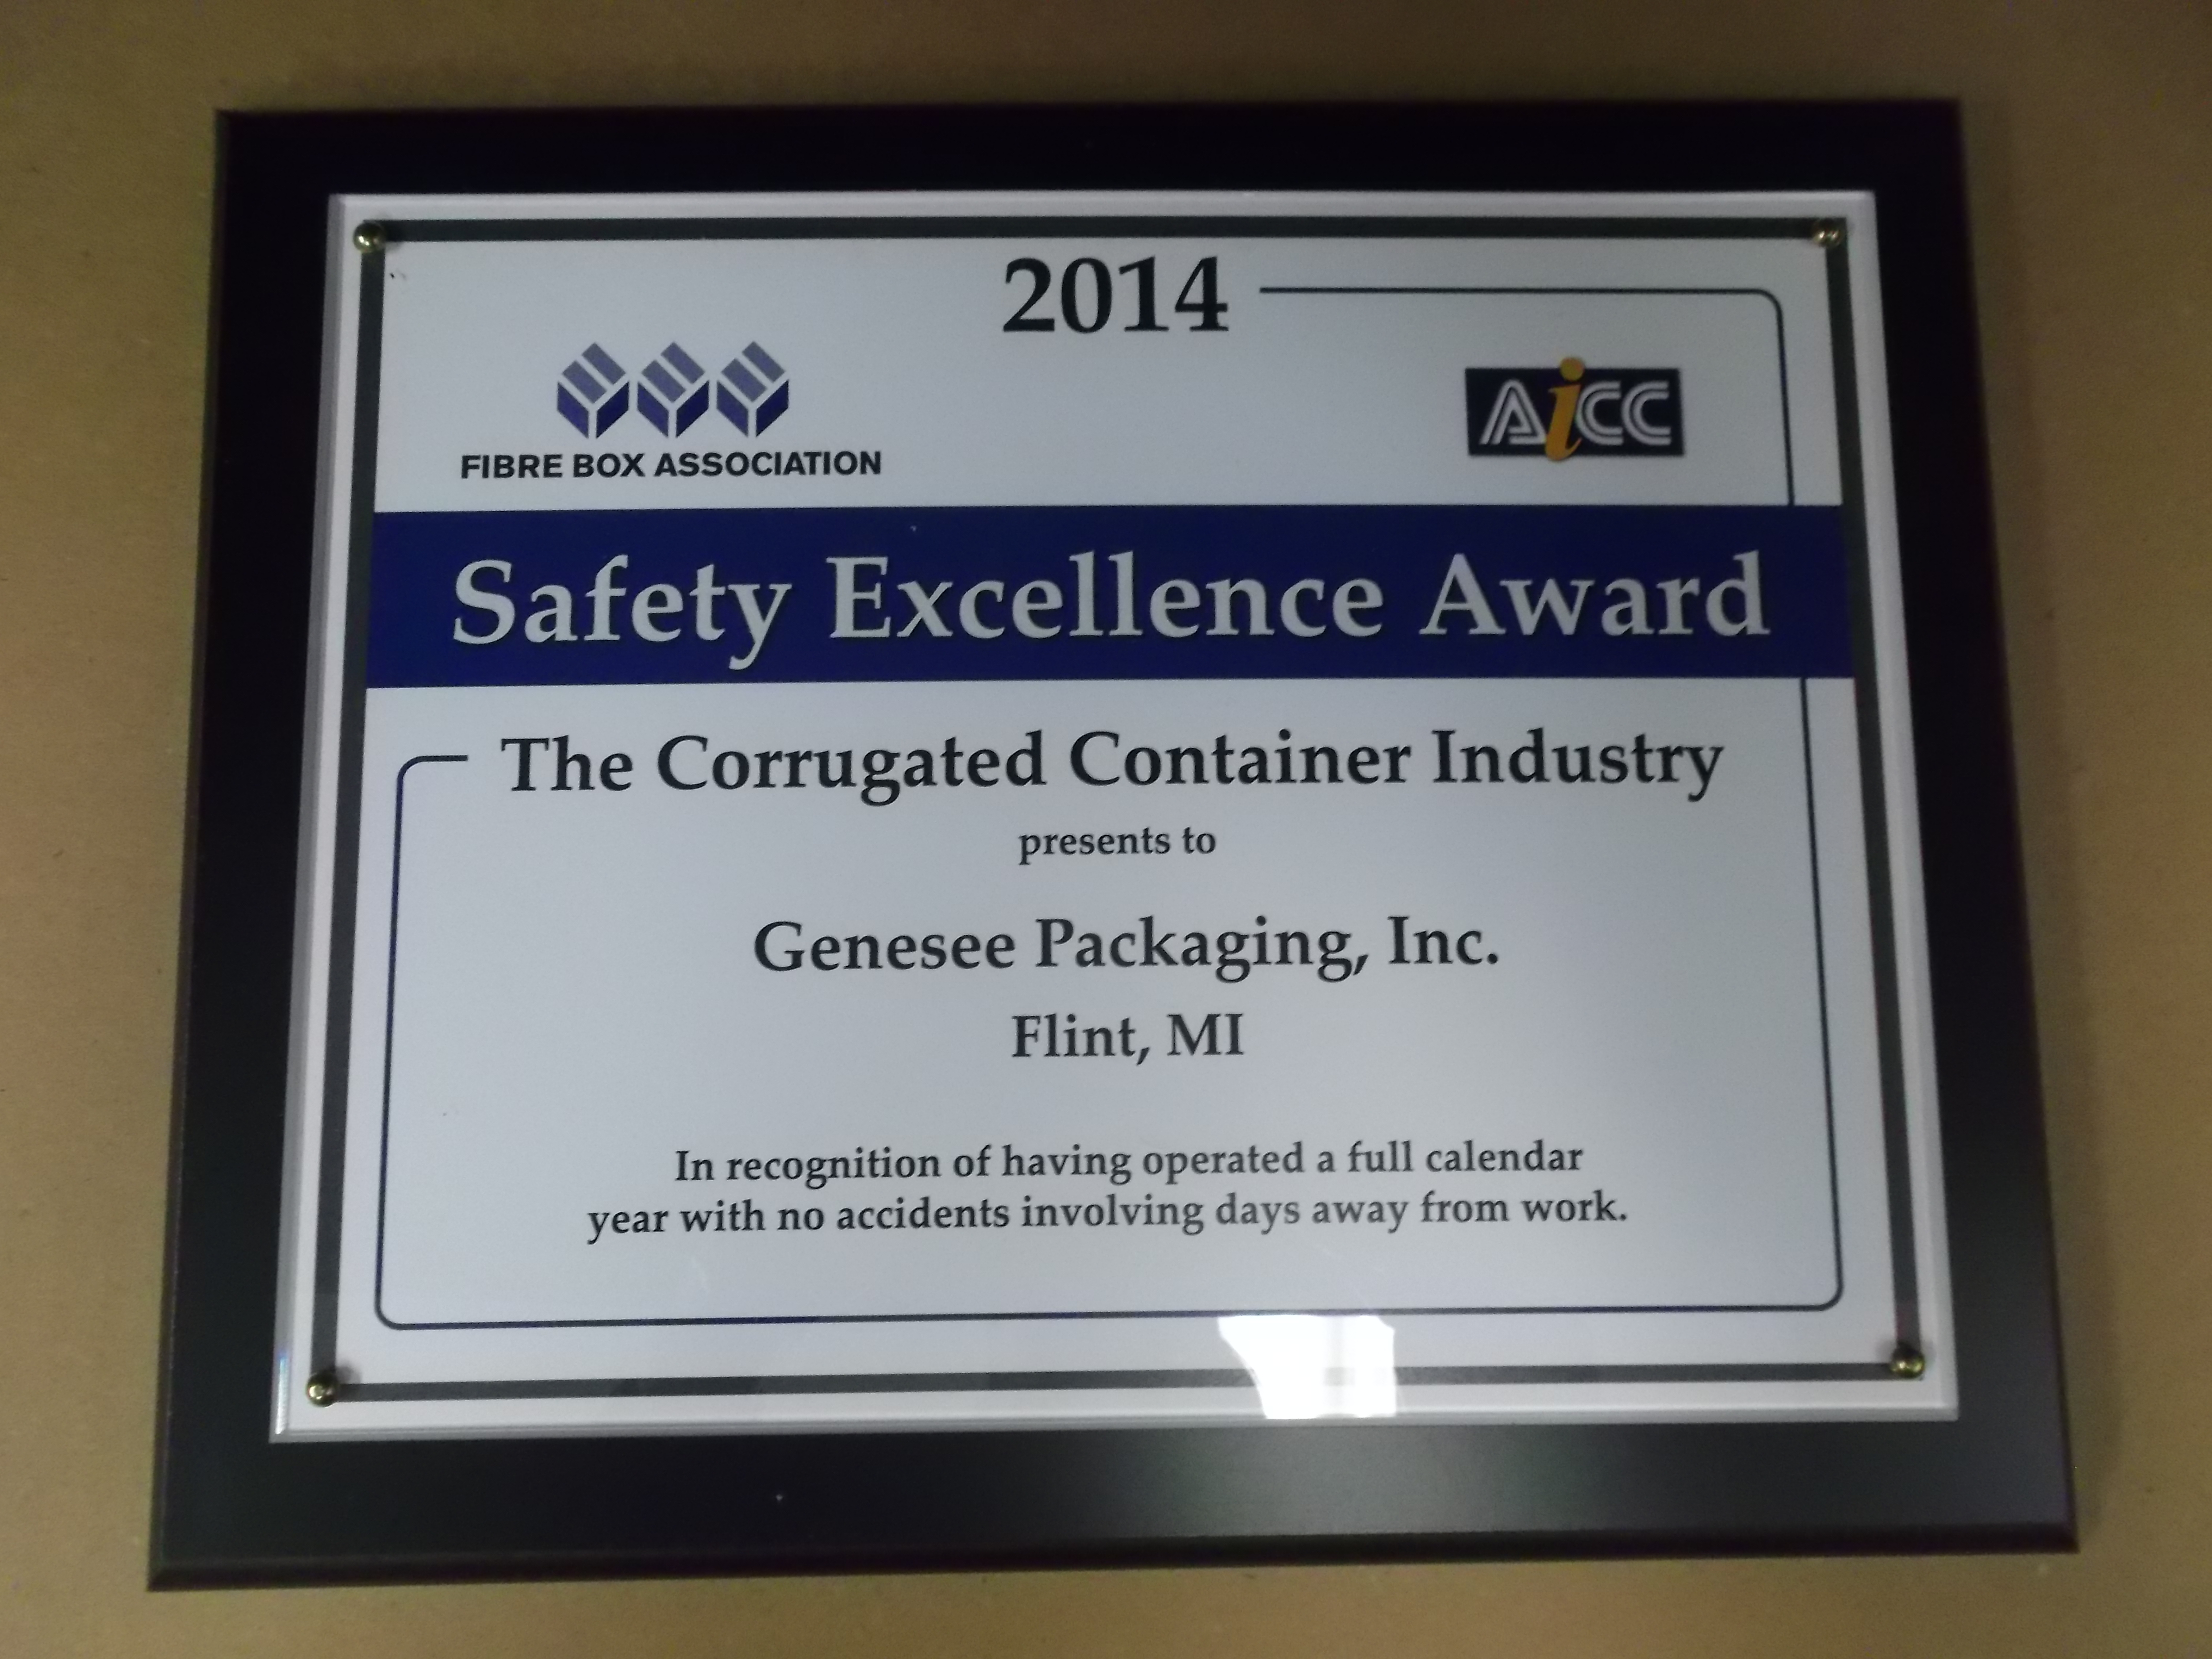 2014 Safety Excellence Award.